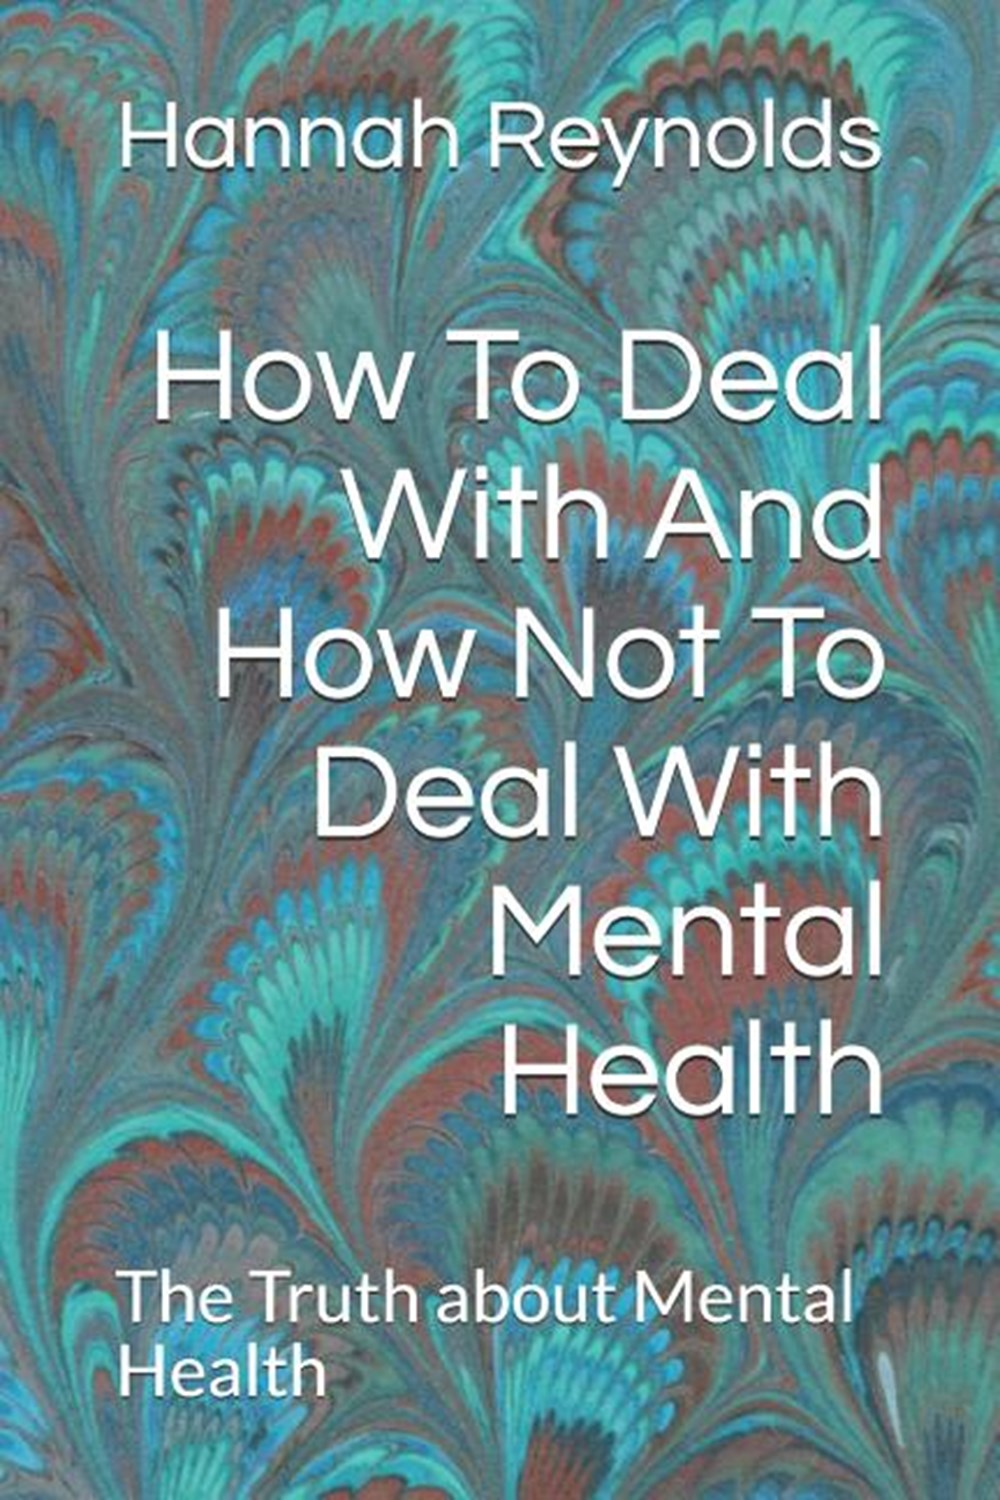 How to deal with and how not to deal with Mental Health